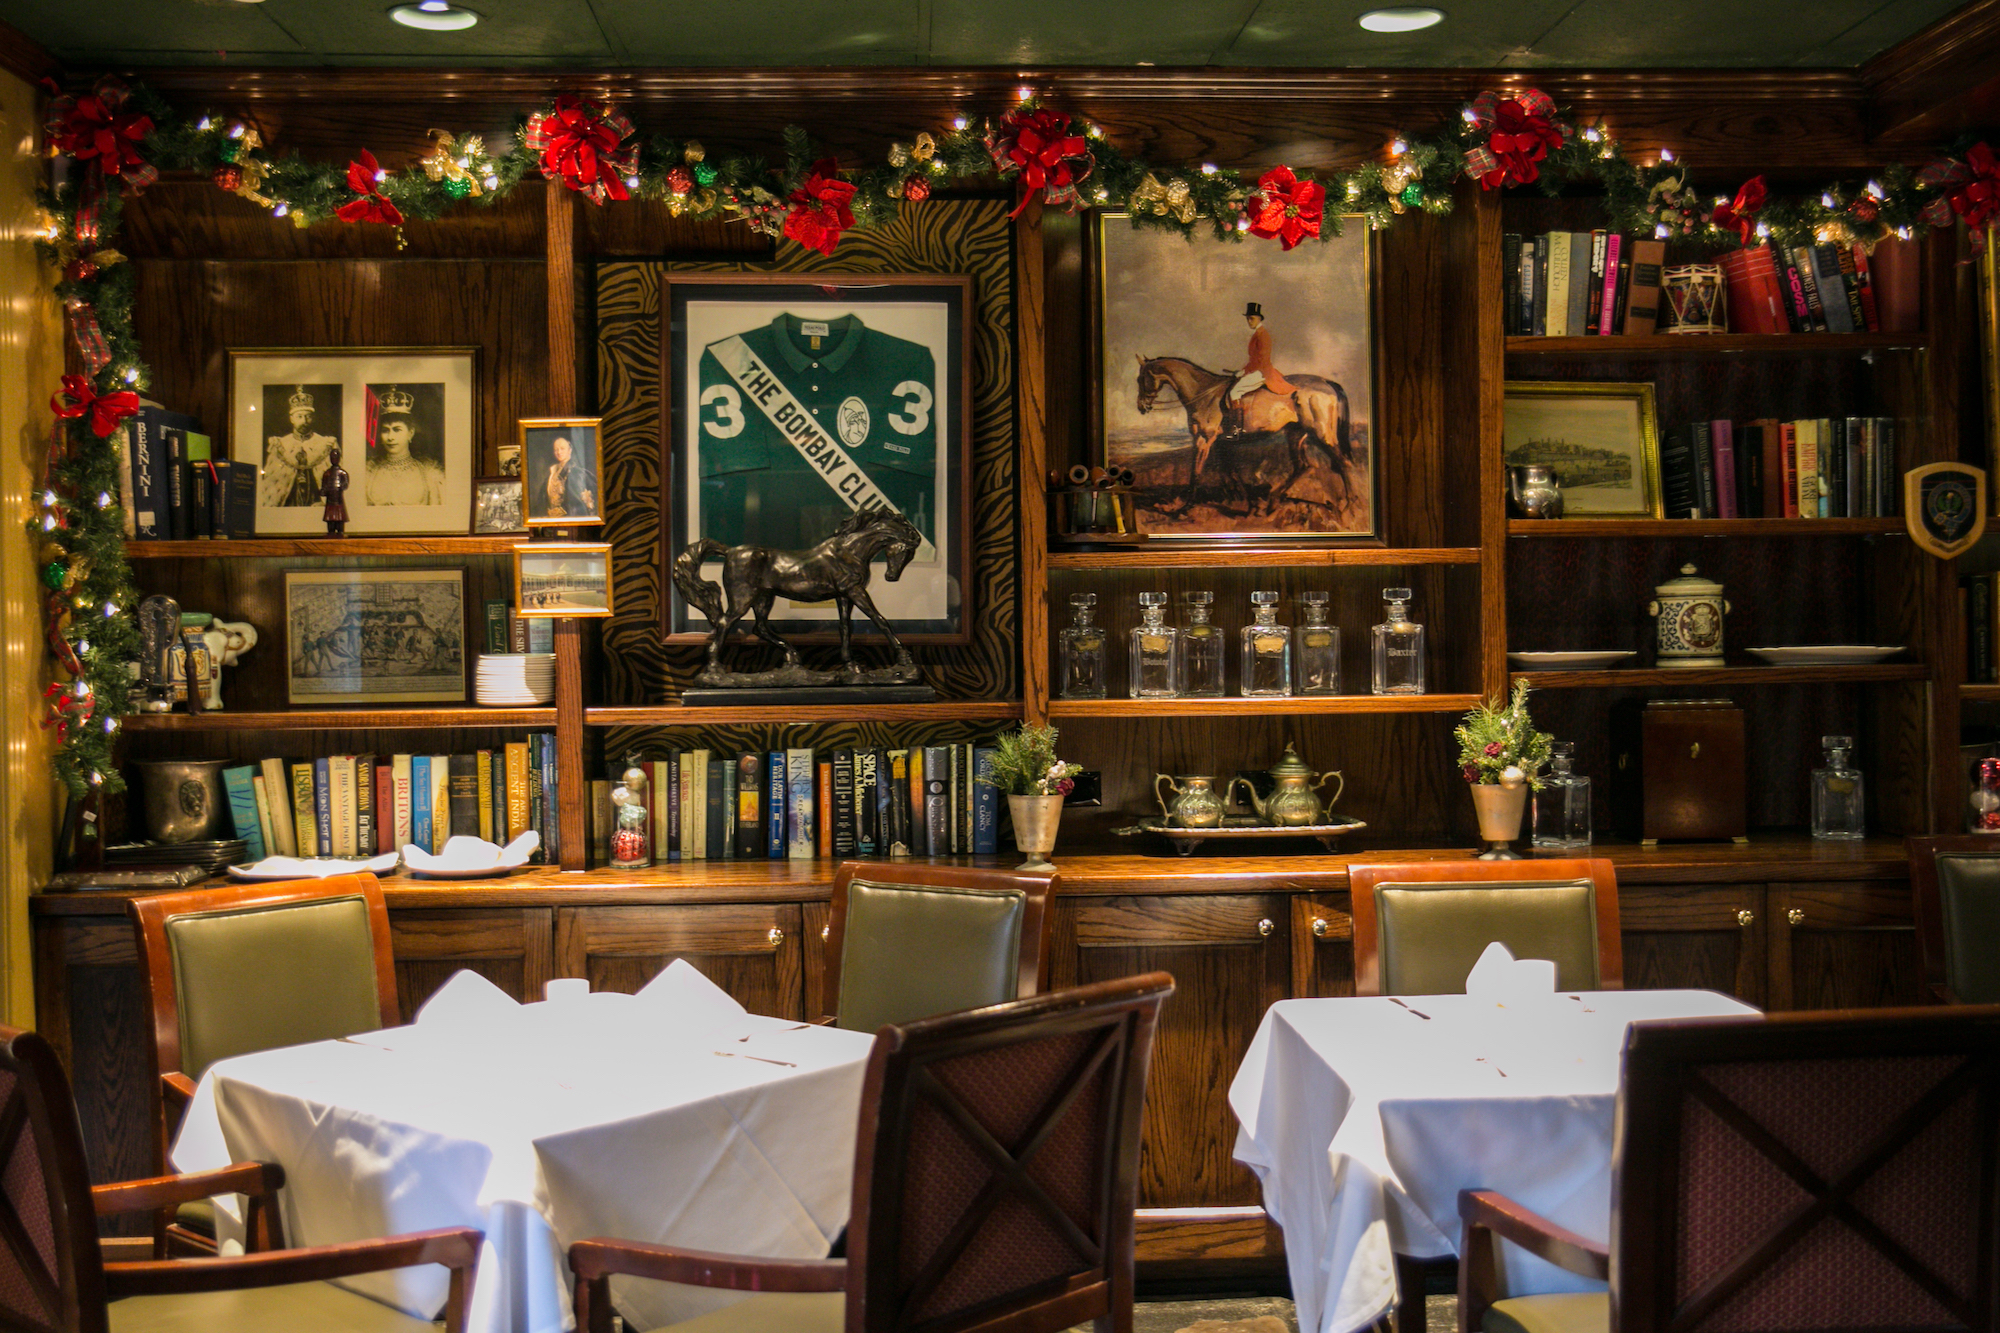 Restaurant Open On Christmas Day 2020 Houston Restaurants Open on Christmas Day in New Orleans | Local's Guide